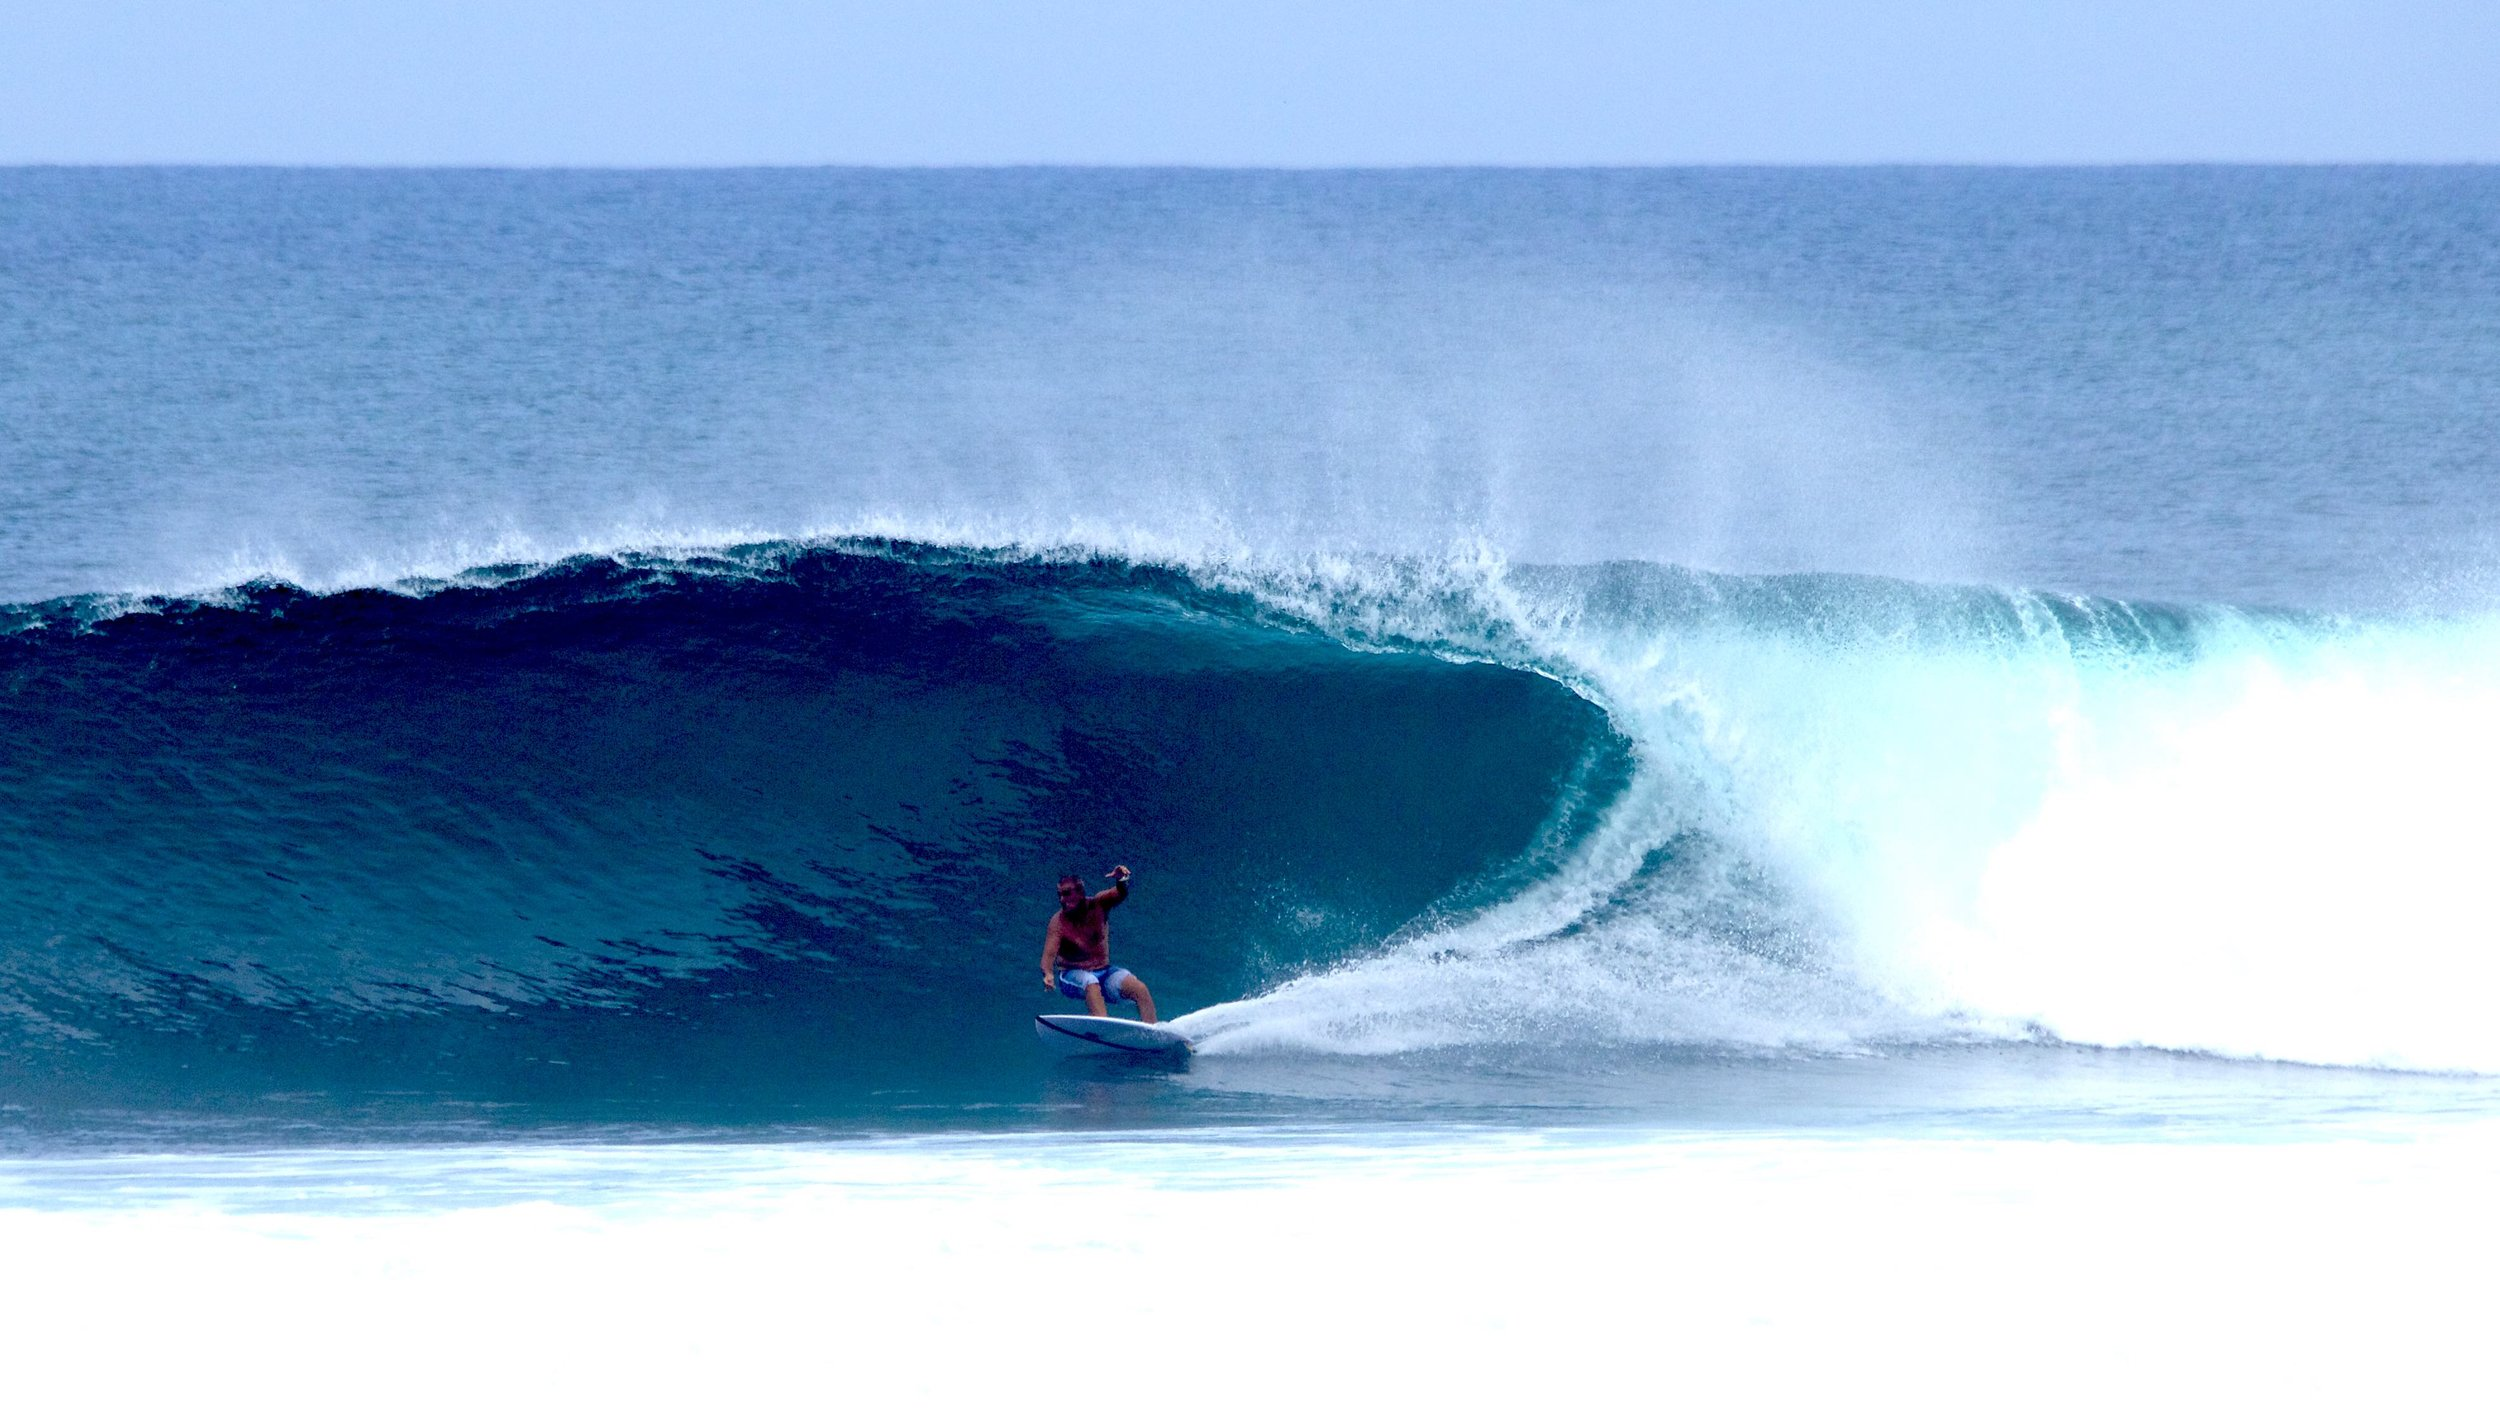 Marechal about to enjoy the fruits of a good bottom turn at Periscopes. Photo: courtesy of Rex Marechal